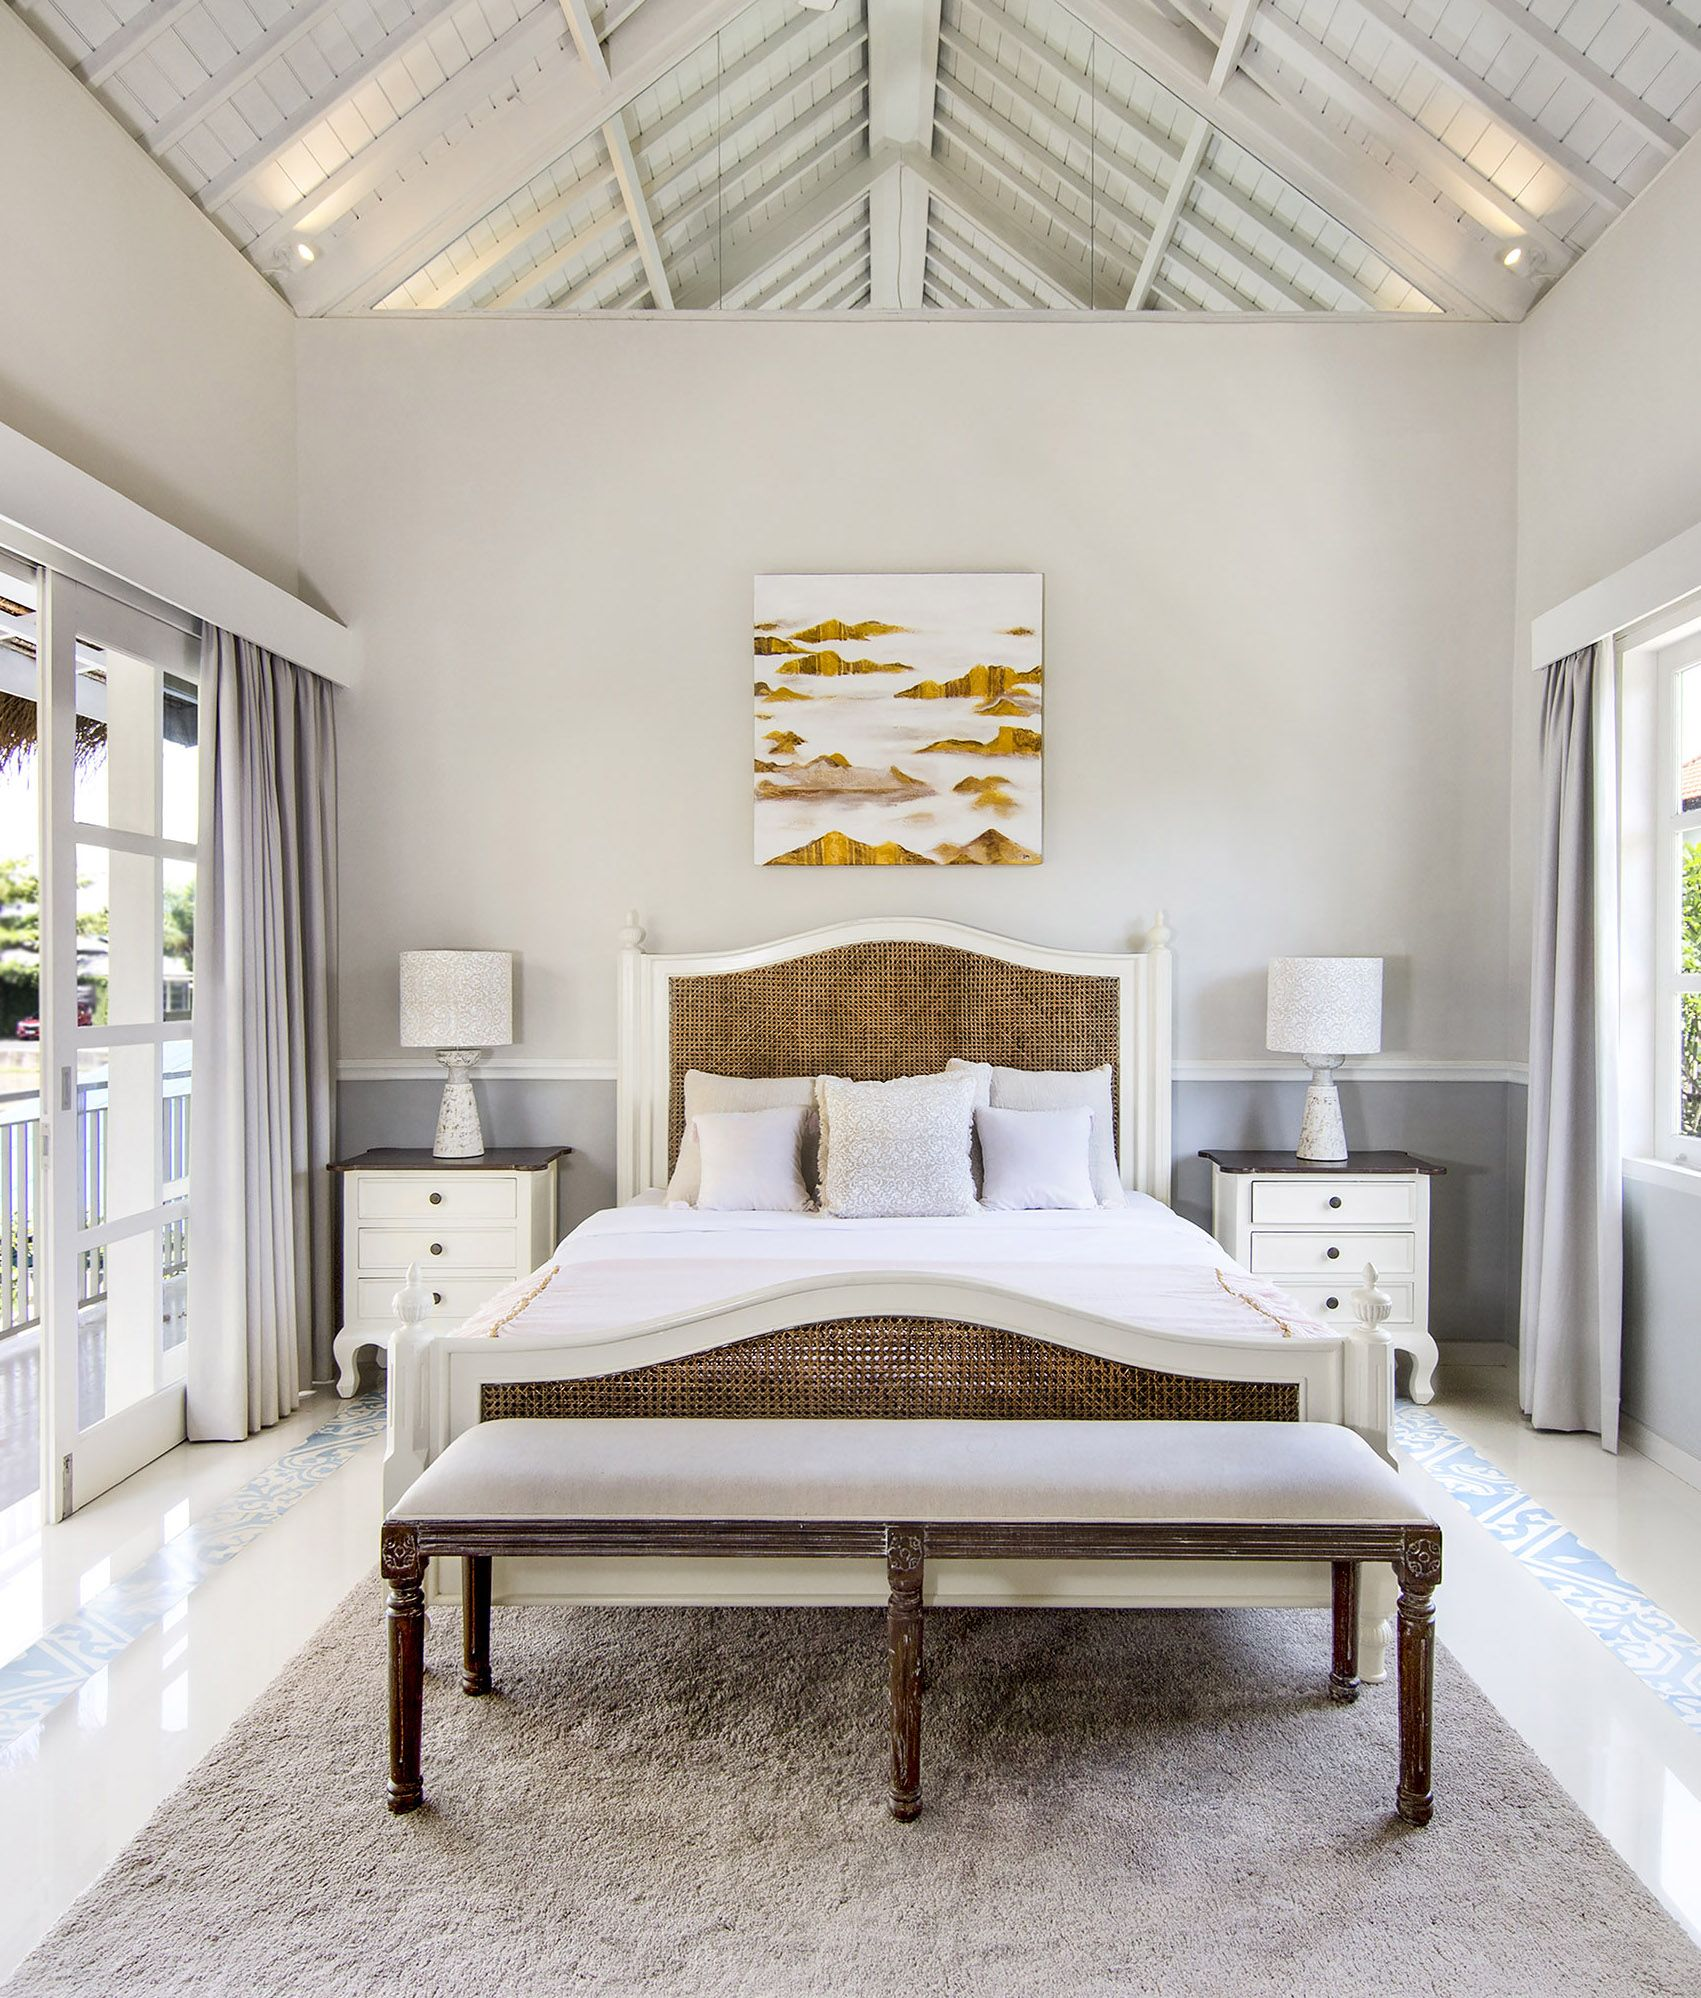 Weekend dreams brought to life by the Britta Bed.  Beautiful bedroom set up by our client for Villa Sasando, Bali.   #bedroominspiration #designinspo #bedroomgoals